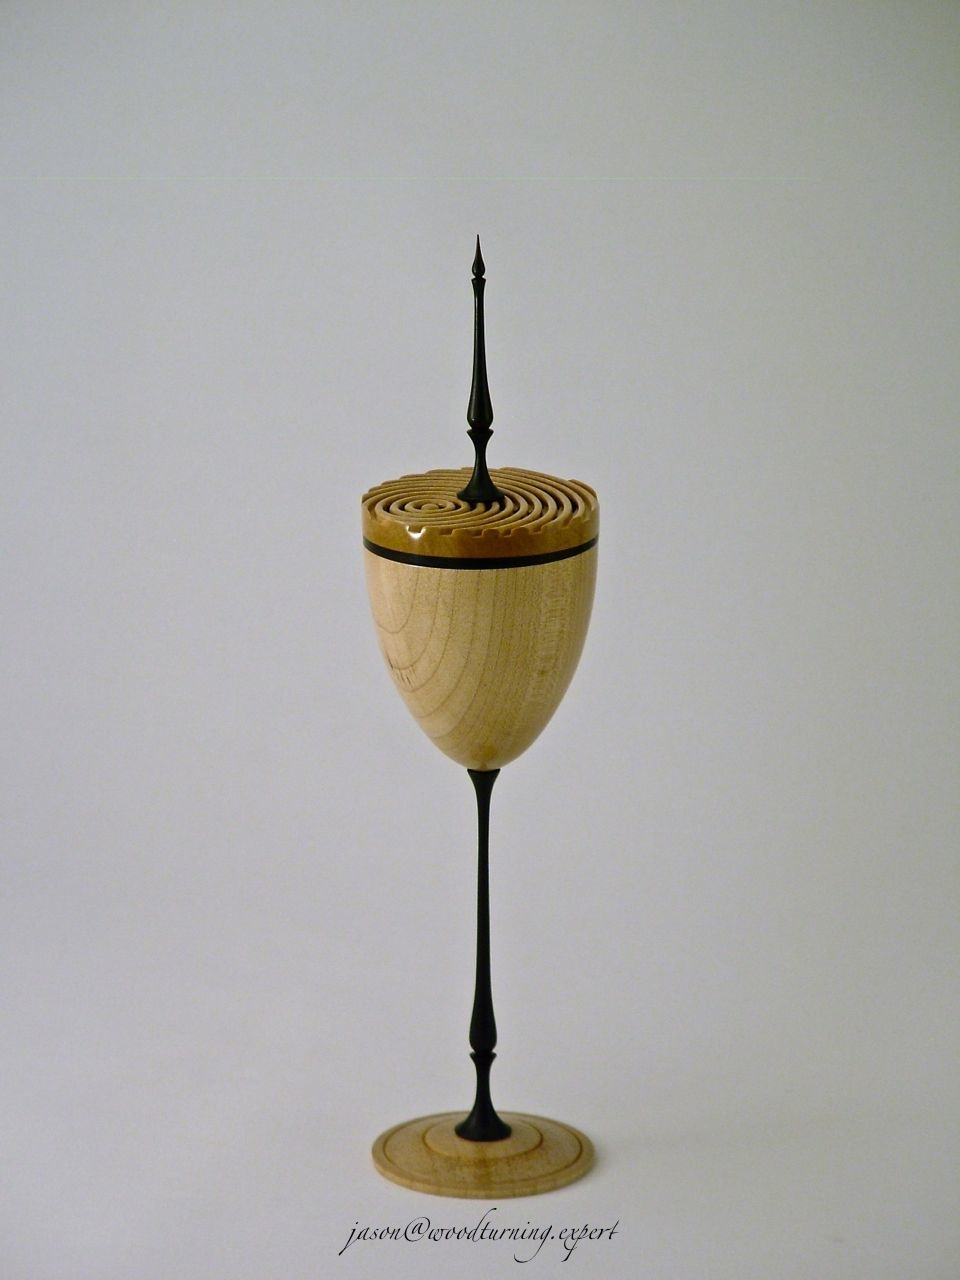 A Woodturned goblet in Sycamore and Ebony with a fine stem and finial, and a multi-center Holtzapffel style lid